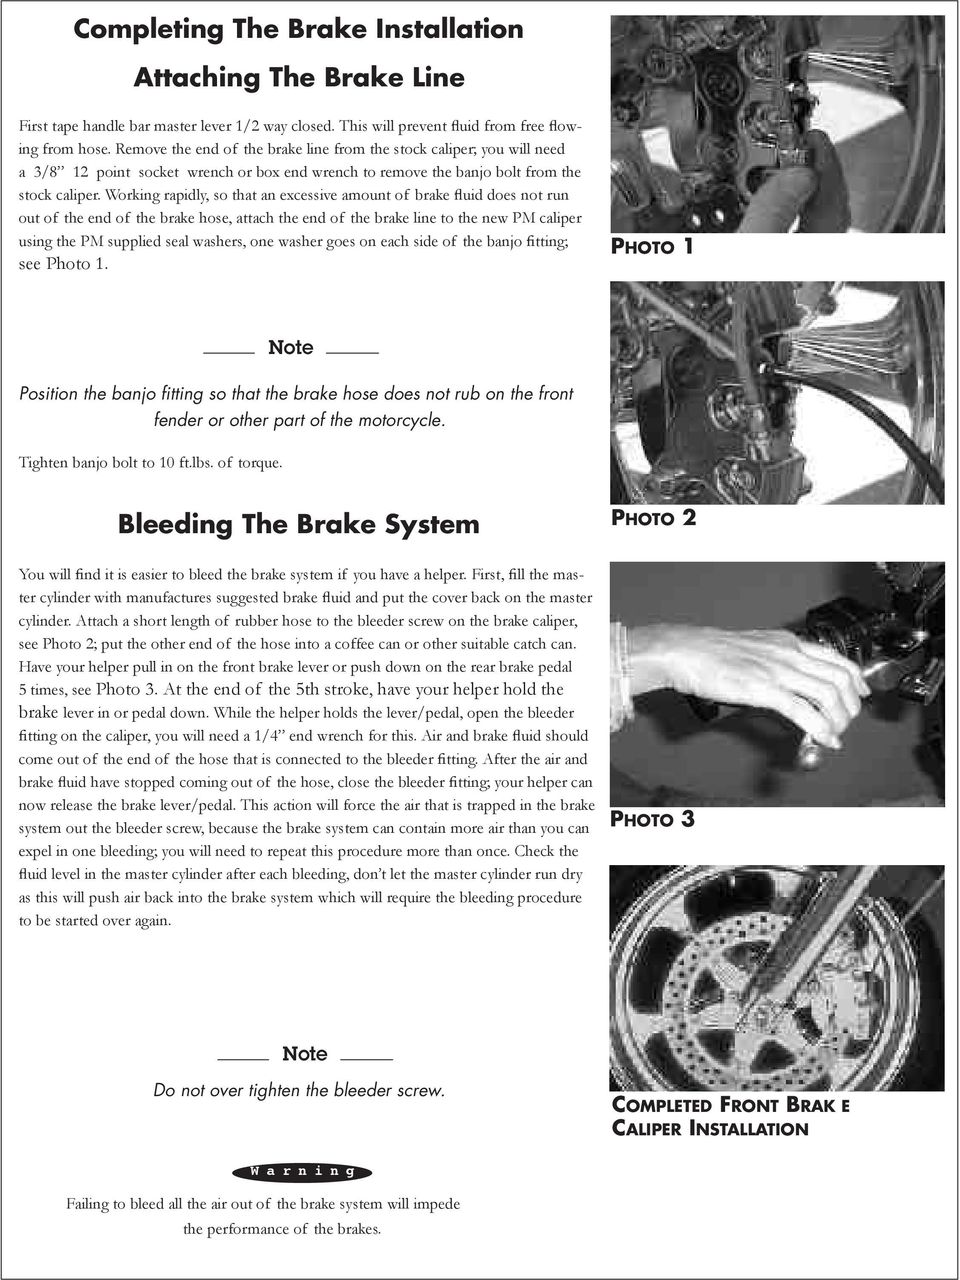 4 Piston Brake Calipers And Rotors Pdf Caption Diagram Of The Basic Front Disc Setup Arotor B Working Rapidly So That An Excessive Amount Fluid Does Not Run Out